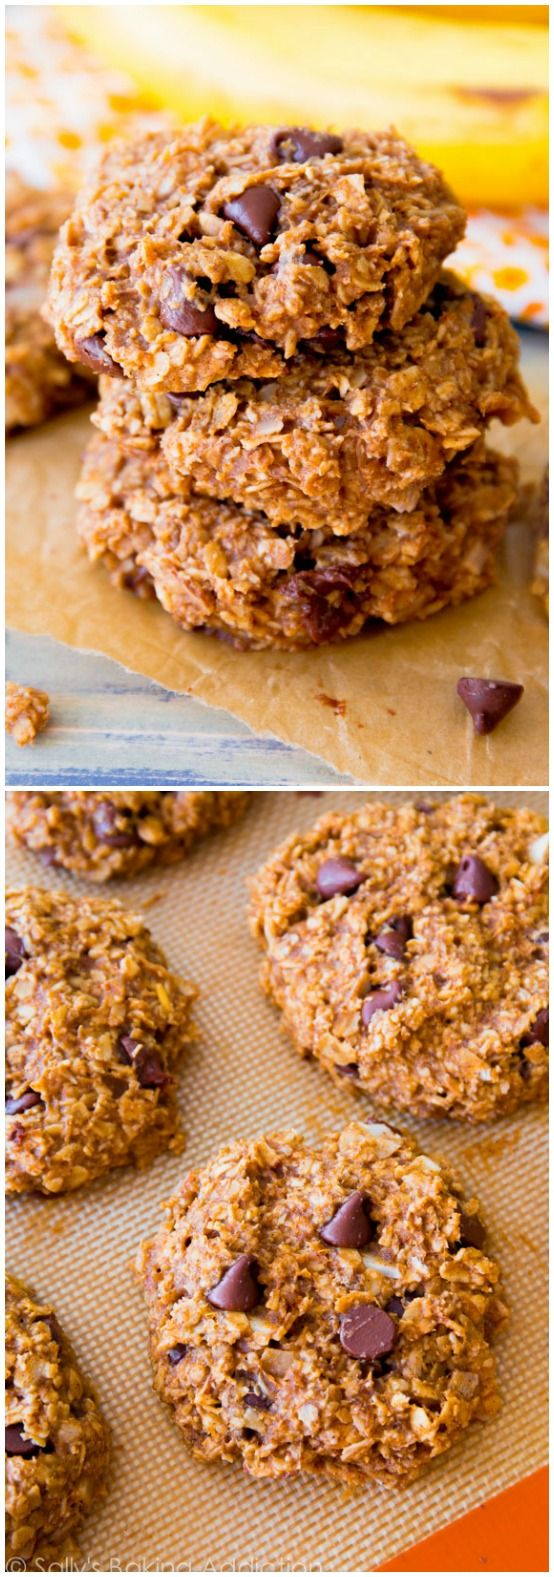 These Healthy Banana Chocolate Chip Cookies are ready in under 30 minutes and you won't even miss the added fat or sugar!